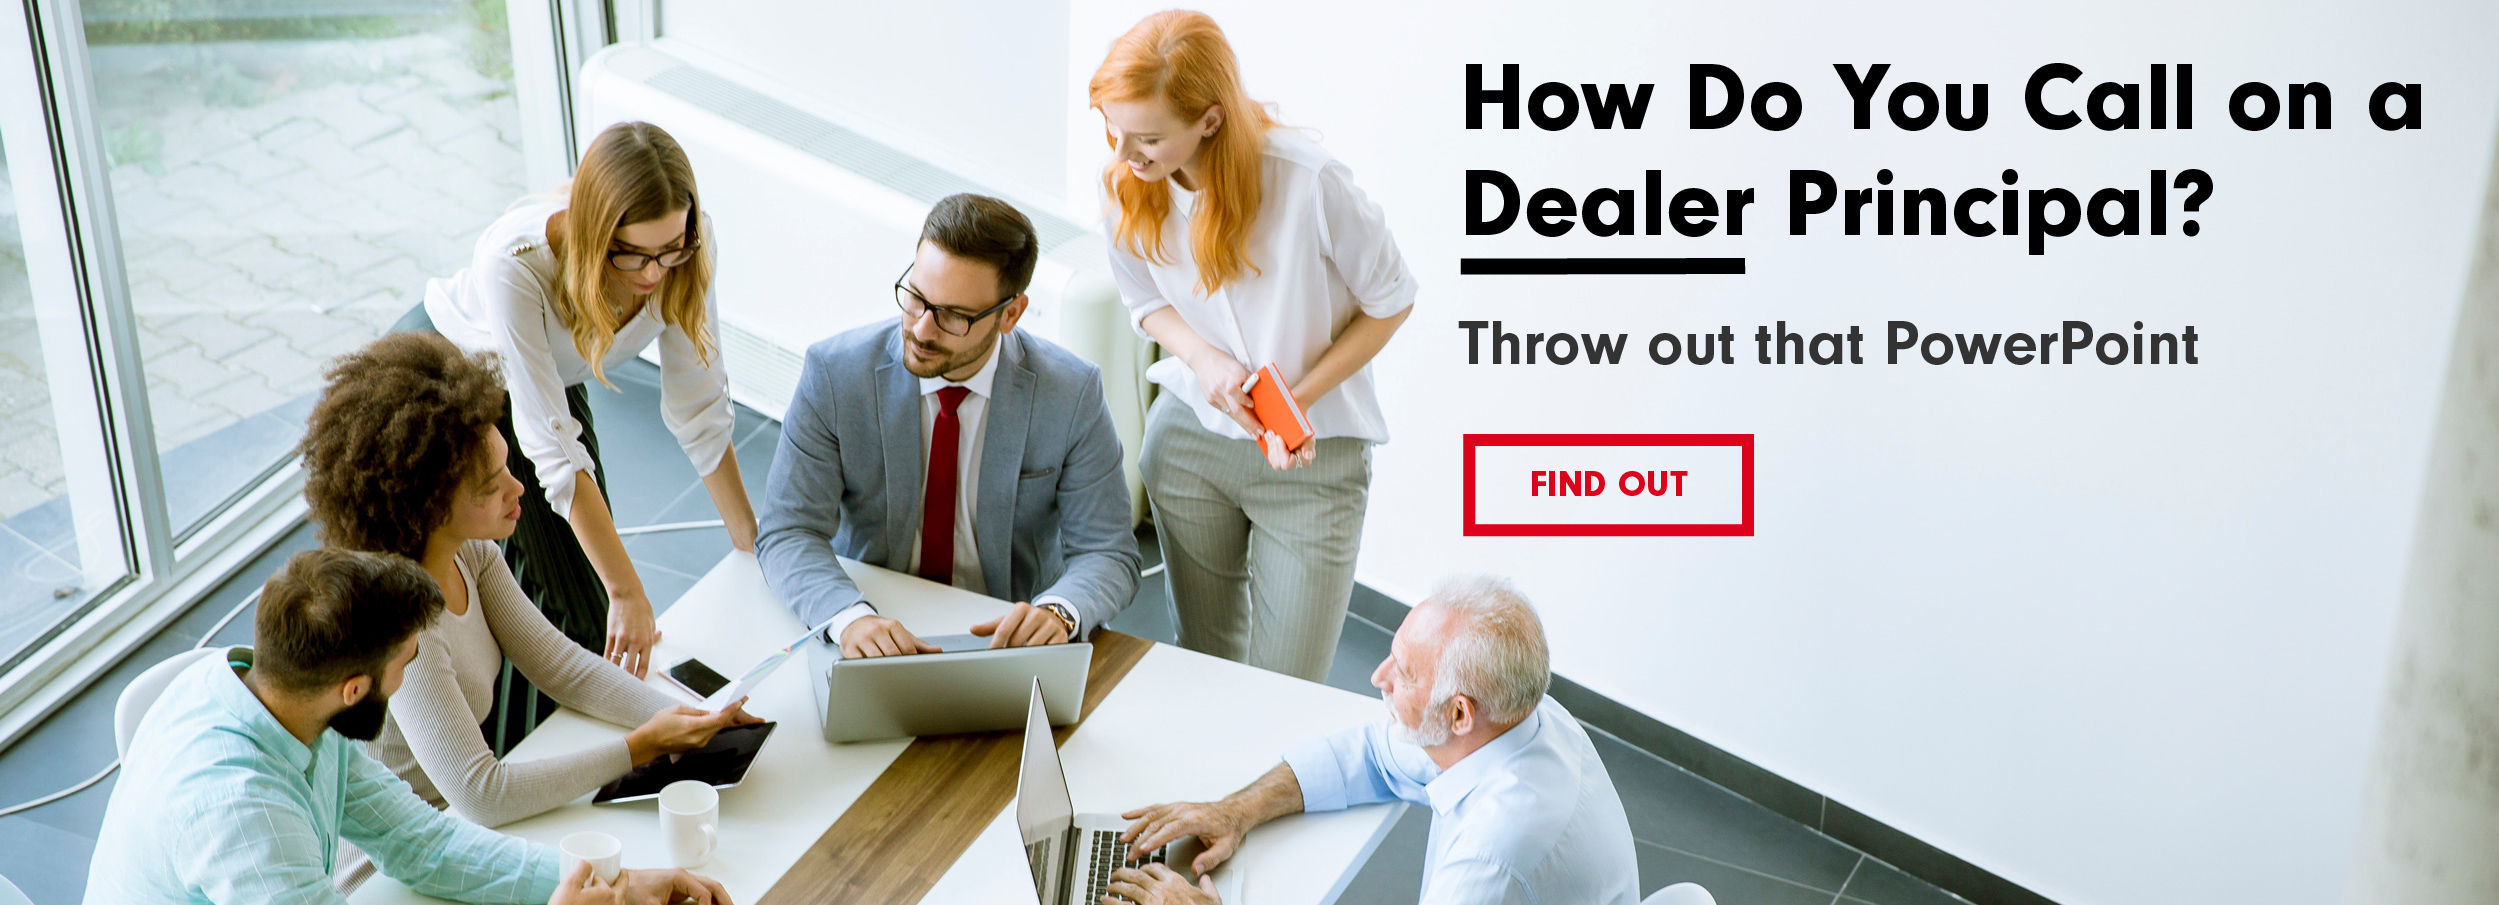 Dealer-Principle-Desktop.jpg